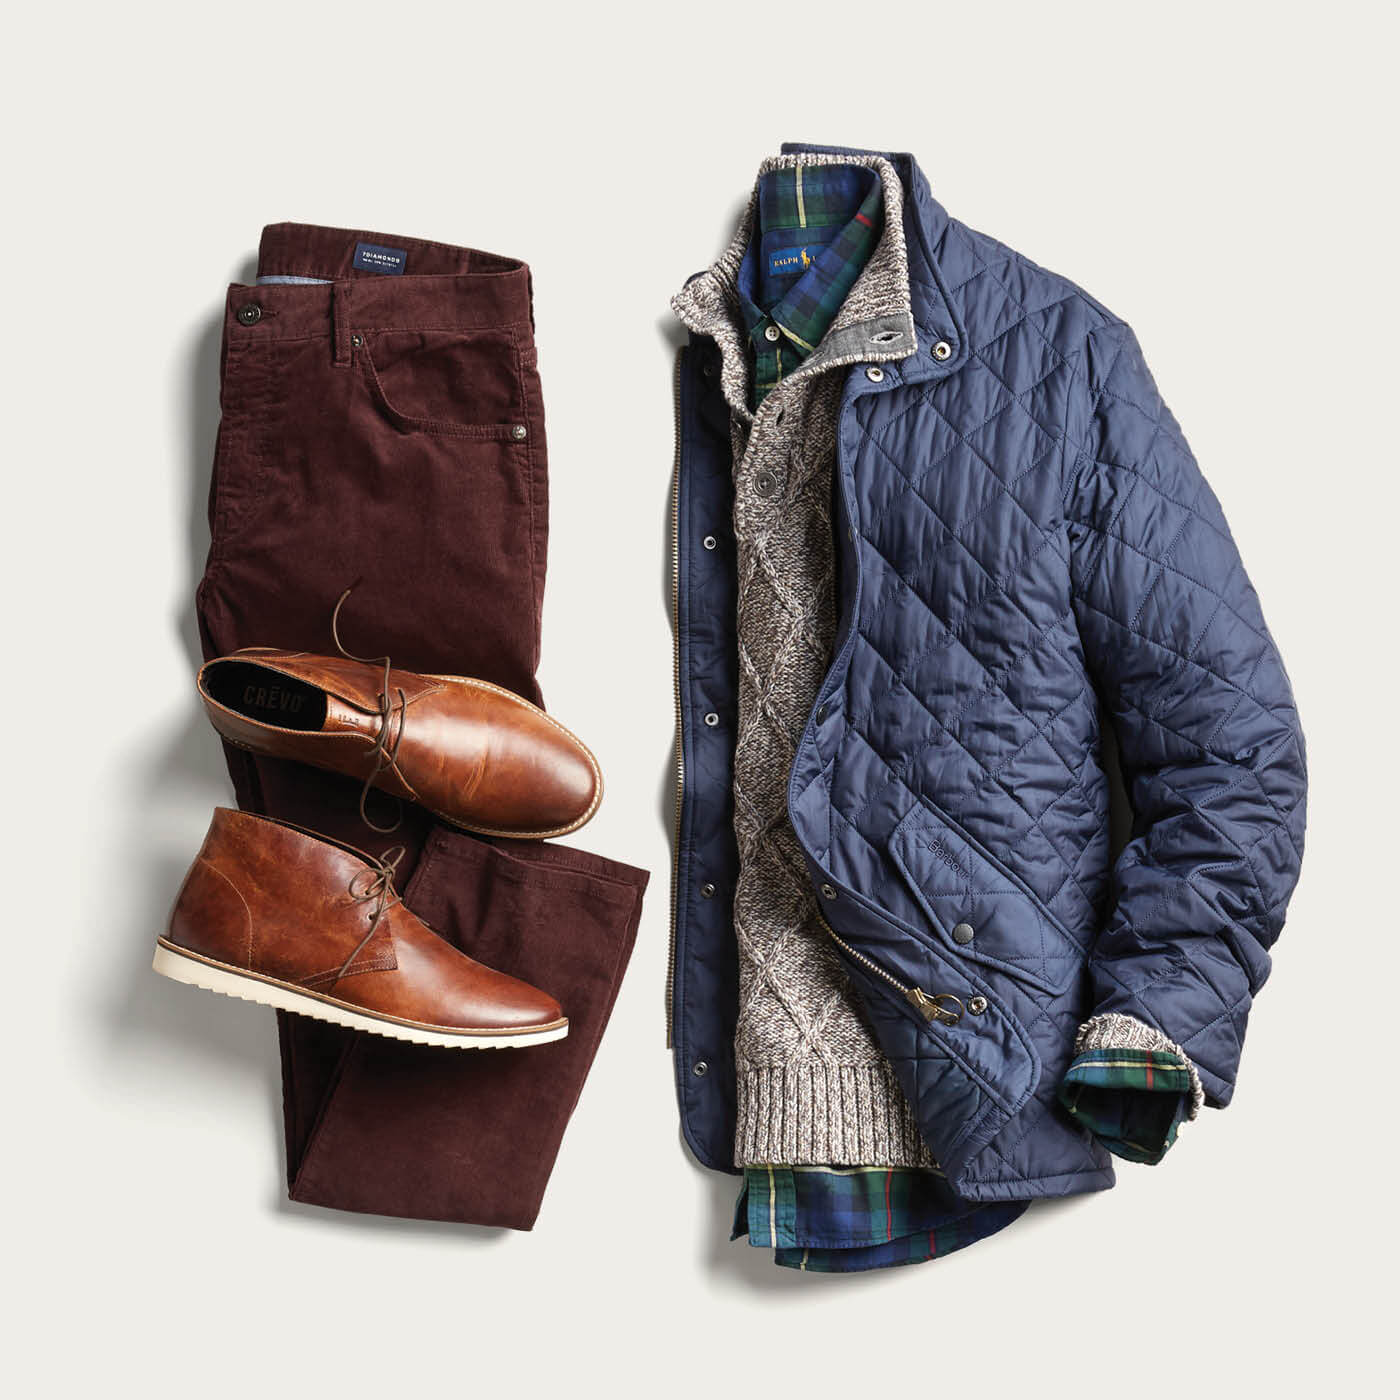 blue jacket and brown corduroy pants